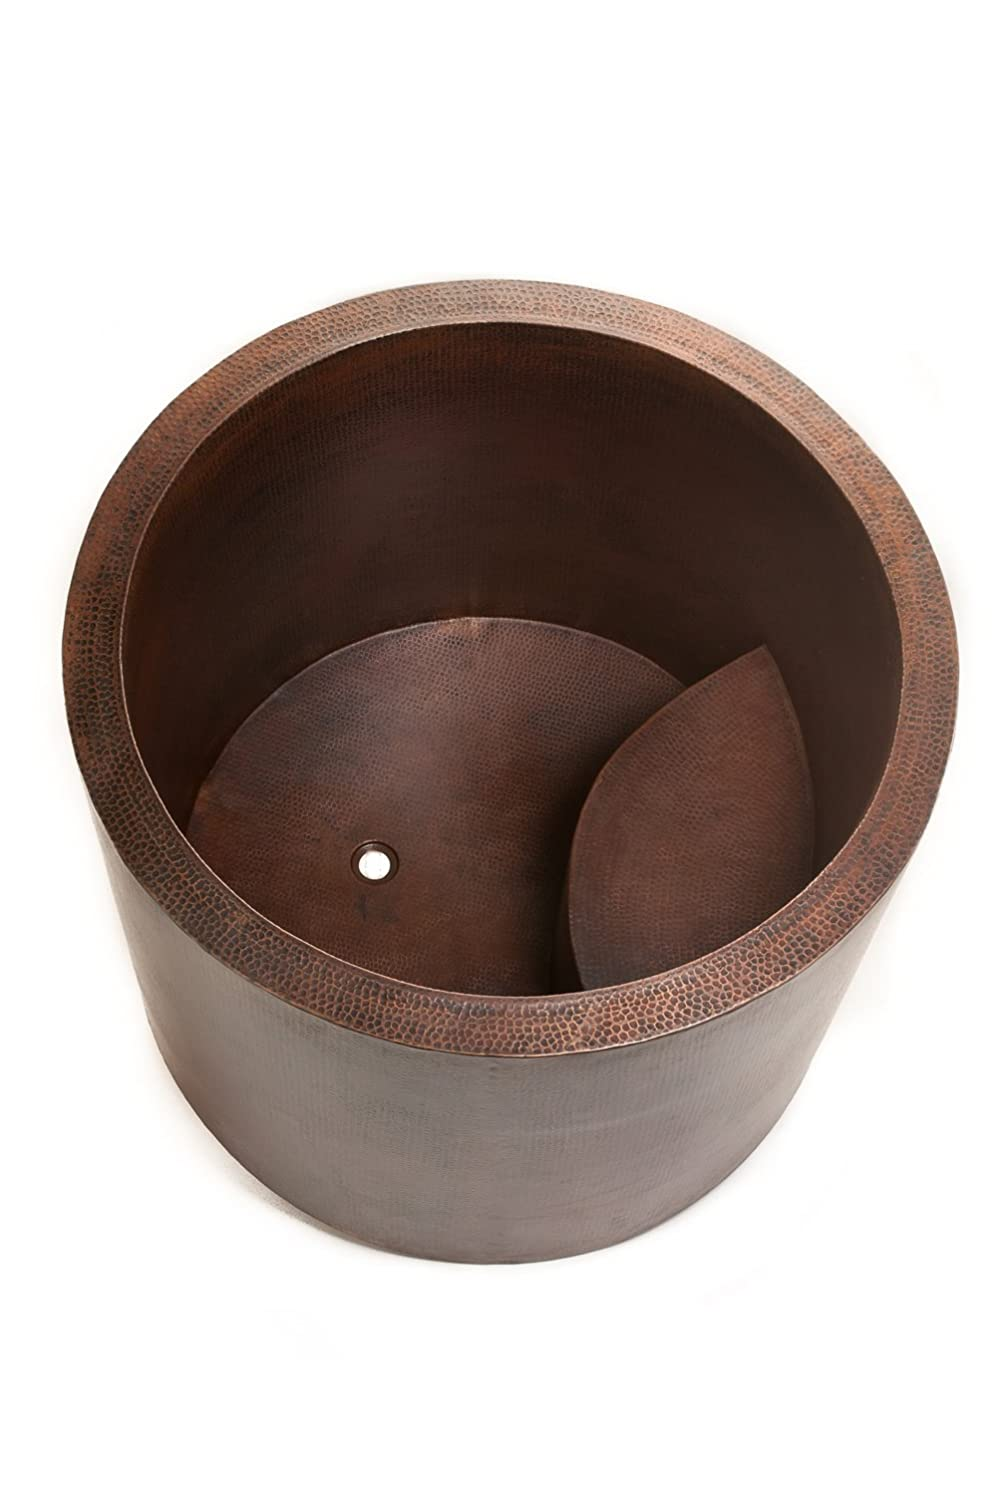 Premier Copper Products BTR45DB Japanese Style Soaking Hand Hammered Copper  Bath Tub, Oil Rubbed Bronze   Utility Sinks   Amazon.com